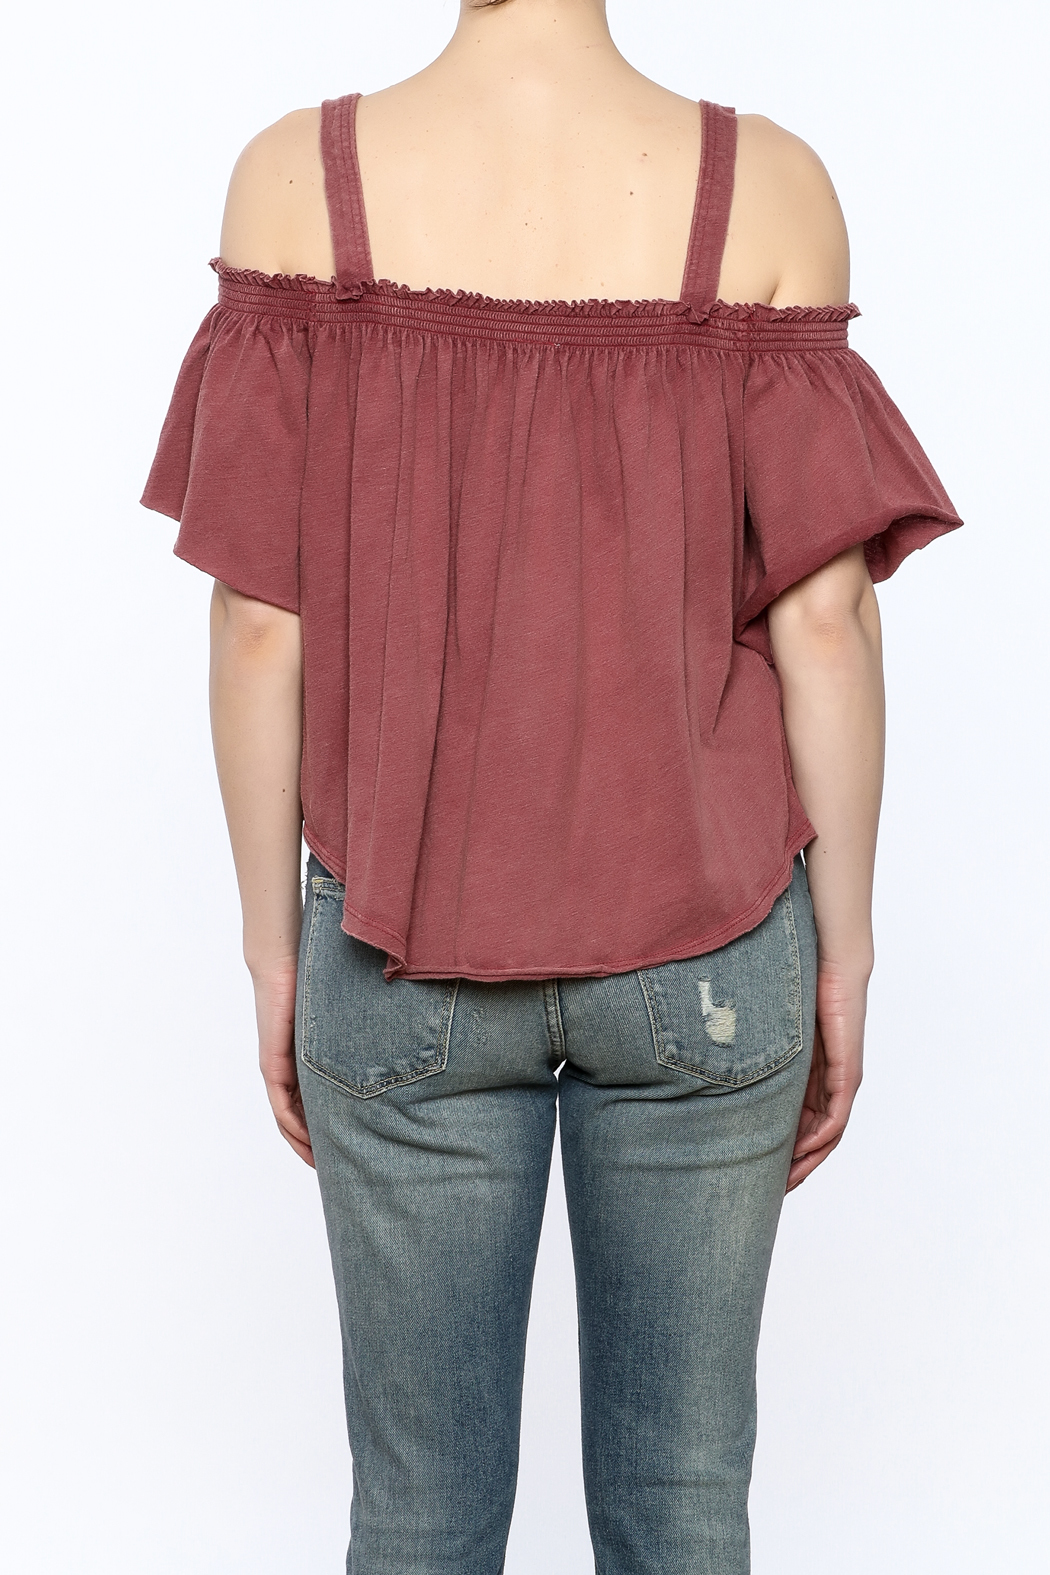 Free People Washed Maroon Top - Back Cropped Image